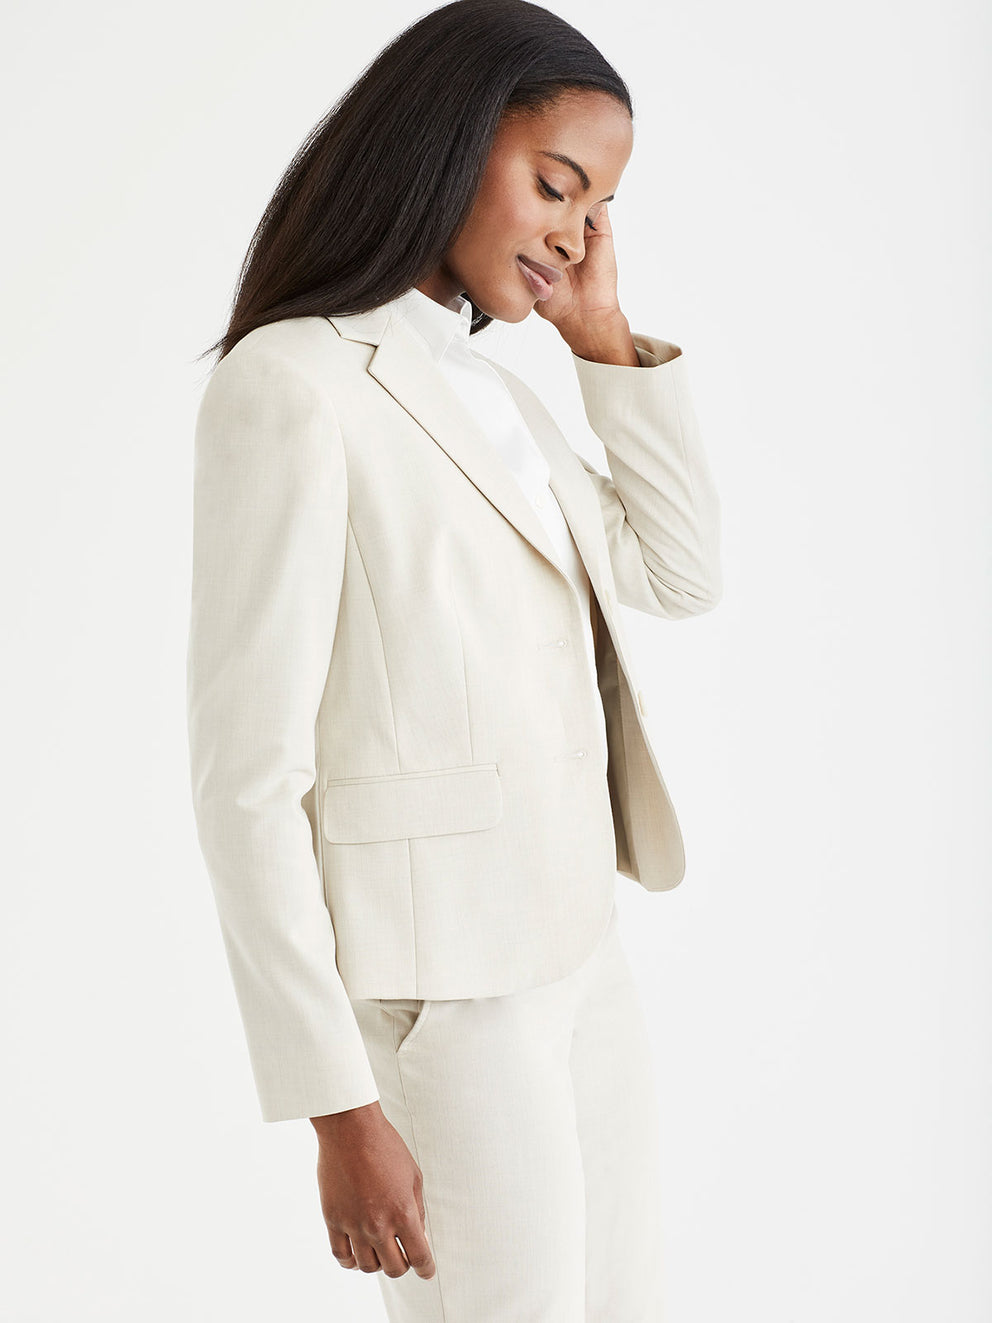 The Jones New York Washable Cropped Two-Button Jacket in color Stone - Image Position 2